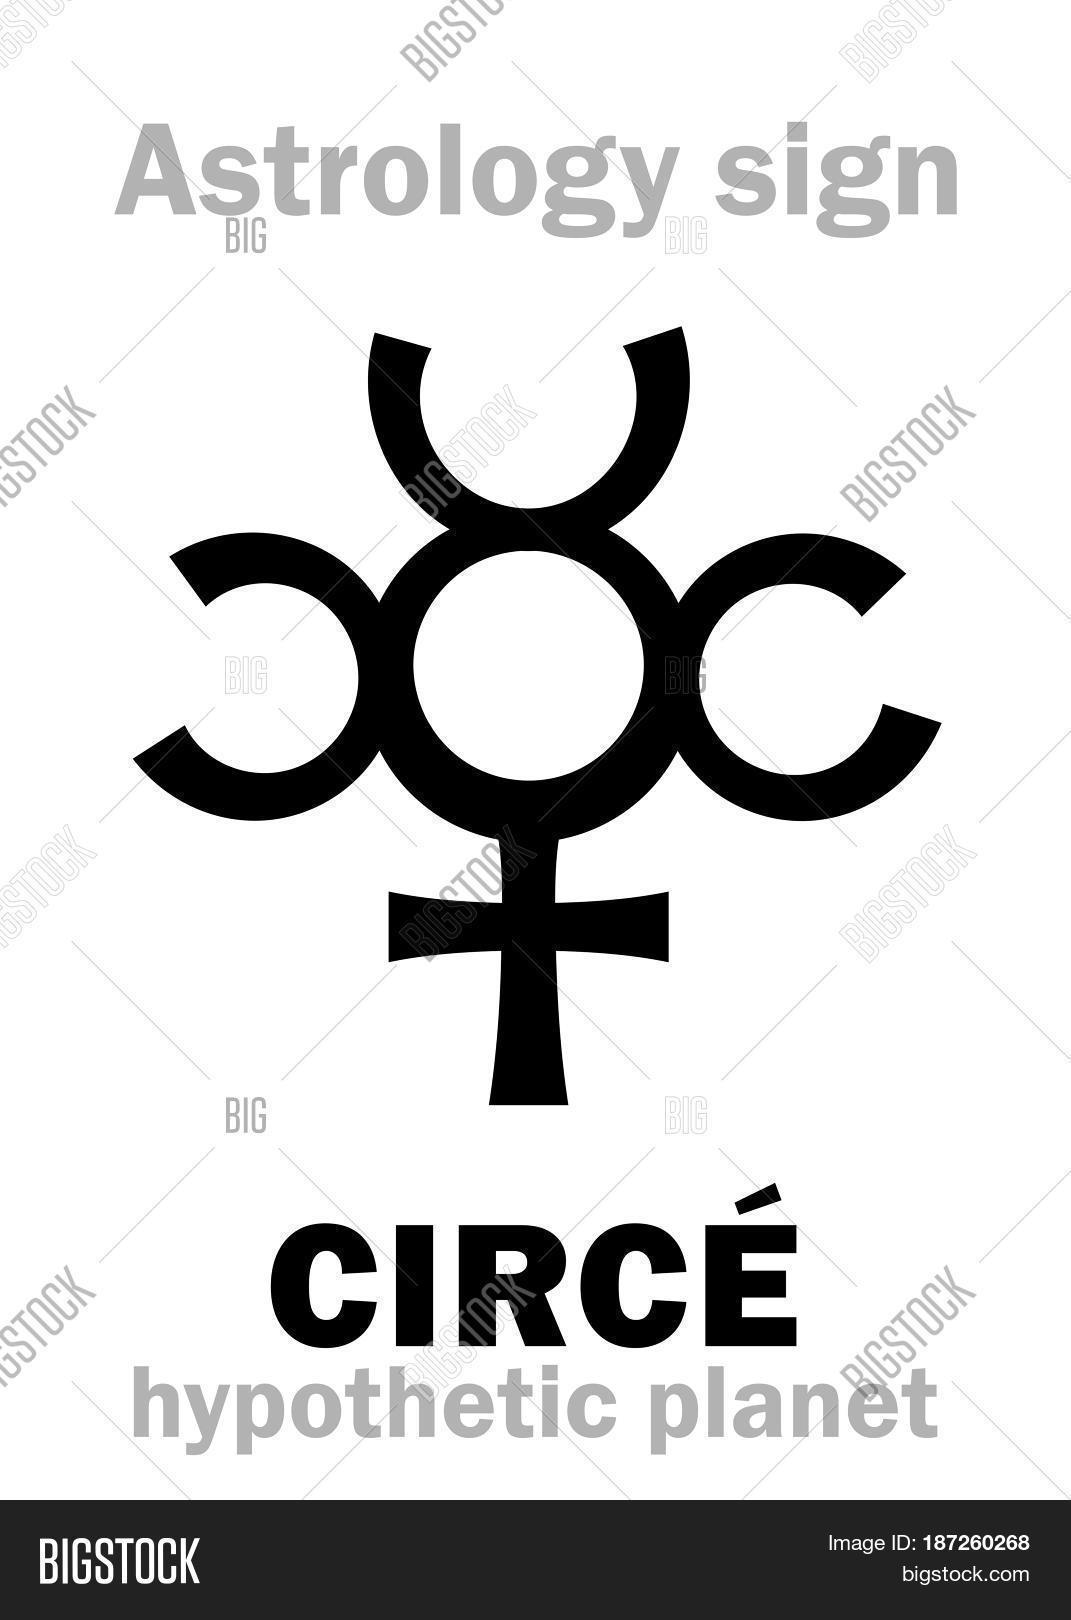 Astrology alphabet circe vector photo bigstock astrology alphabet circe hypothetic little planet between jupiter and saturn hieroglyphics buycottarizona Image collections